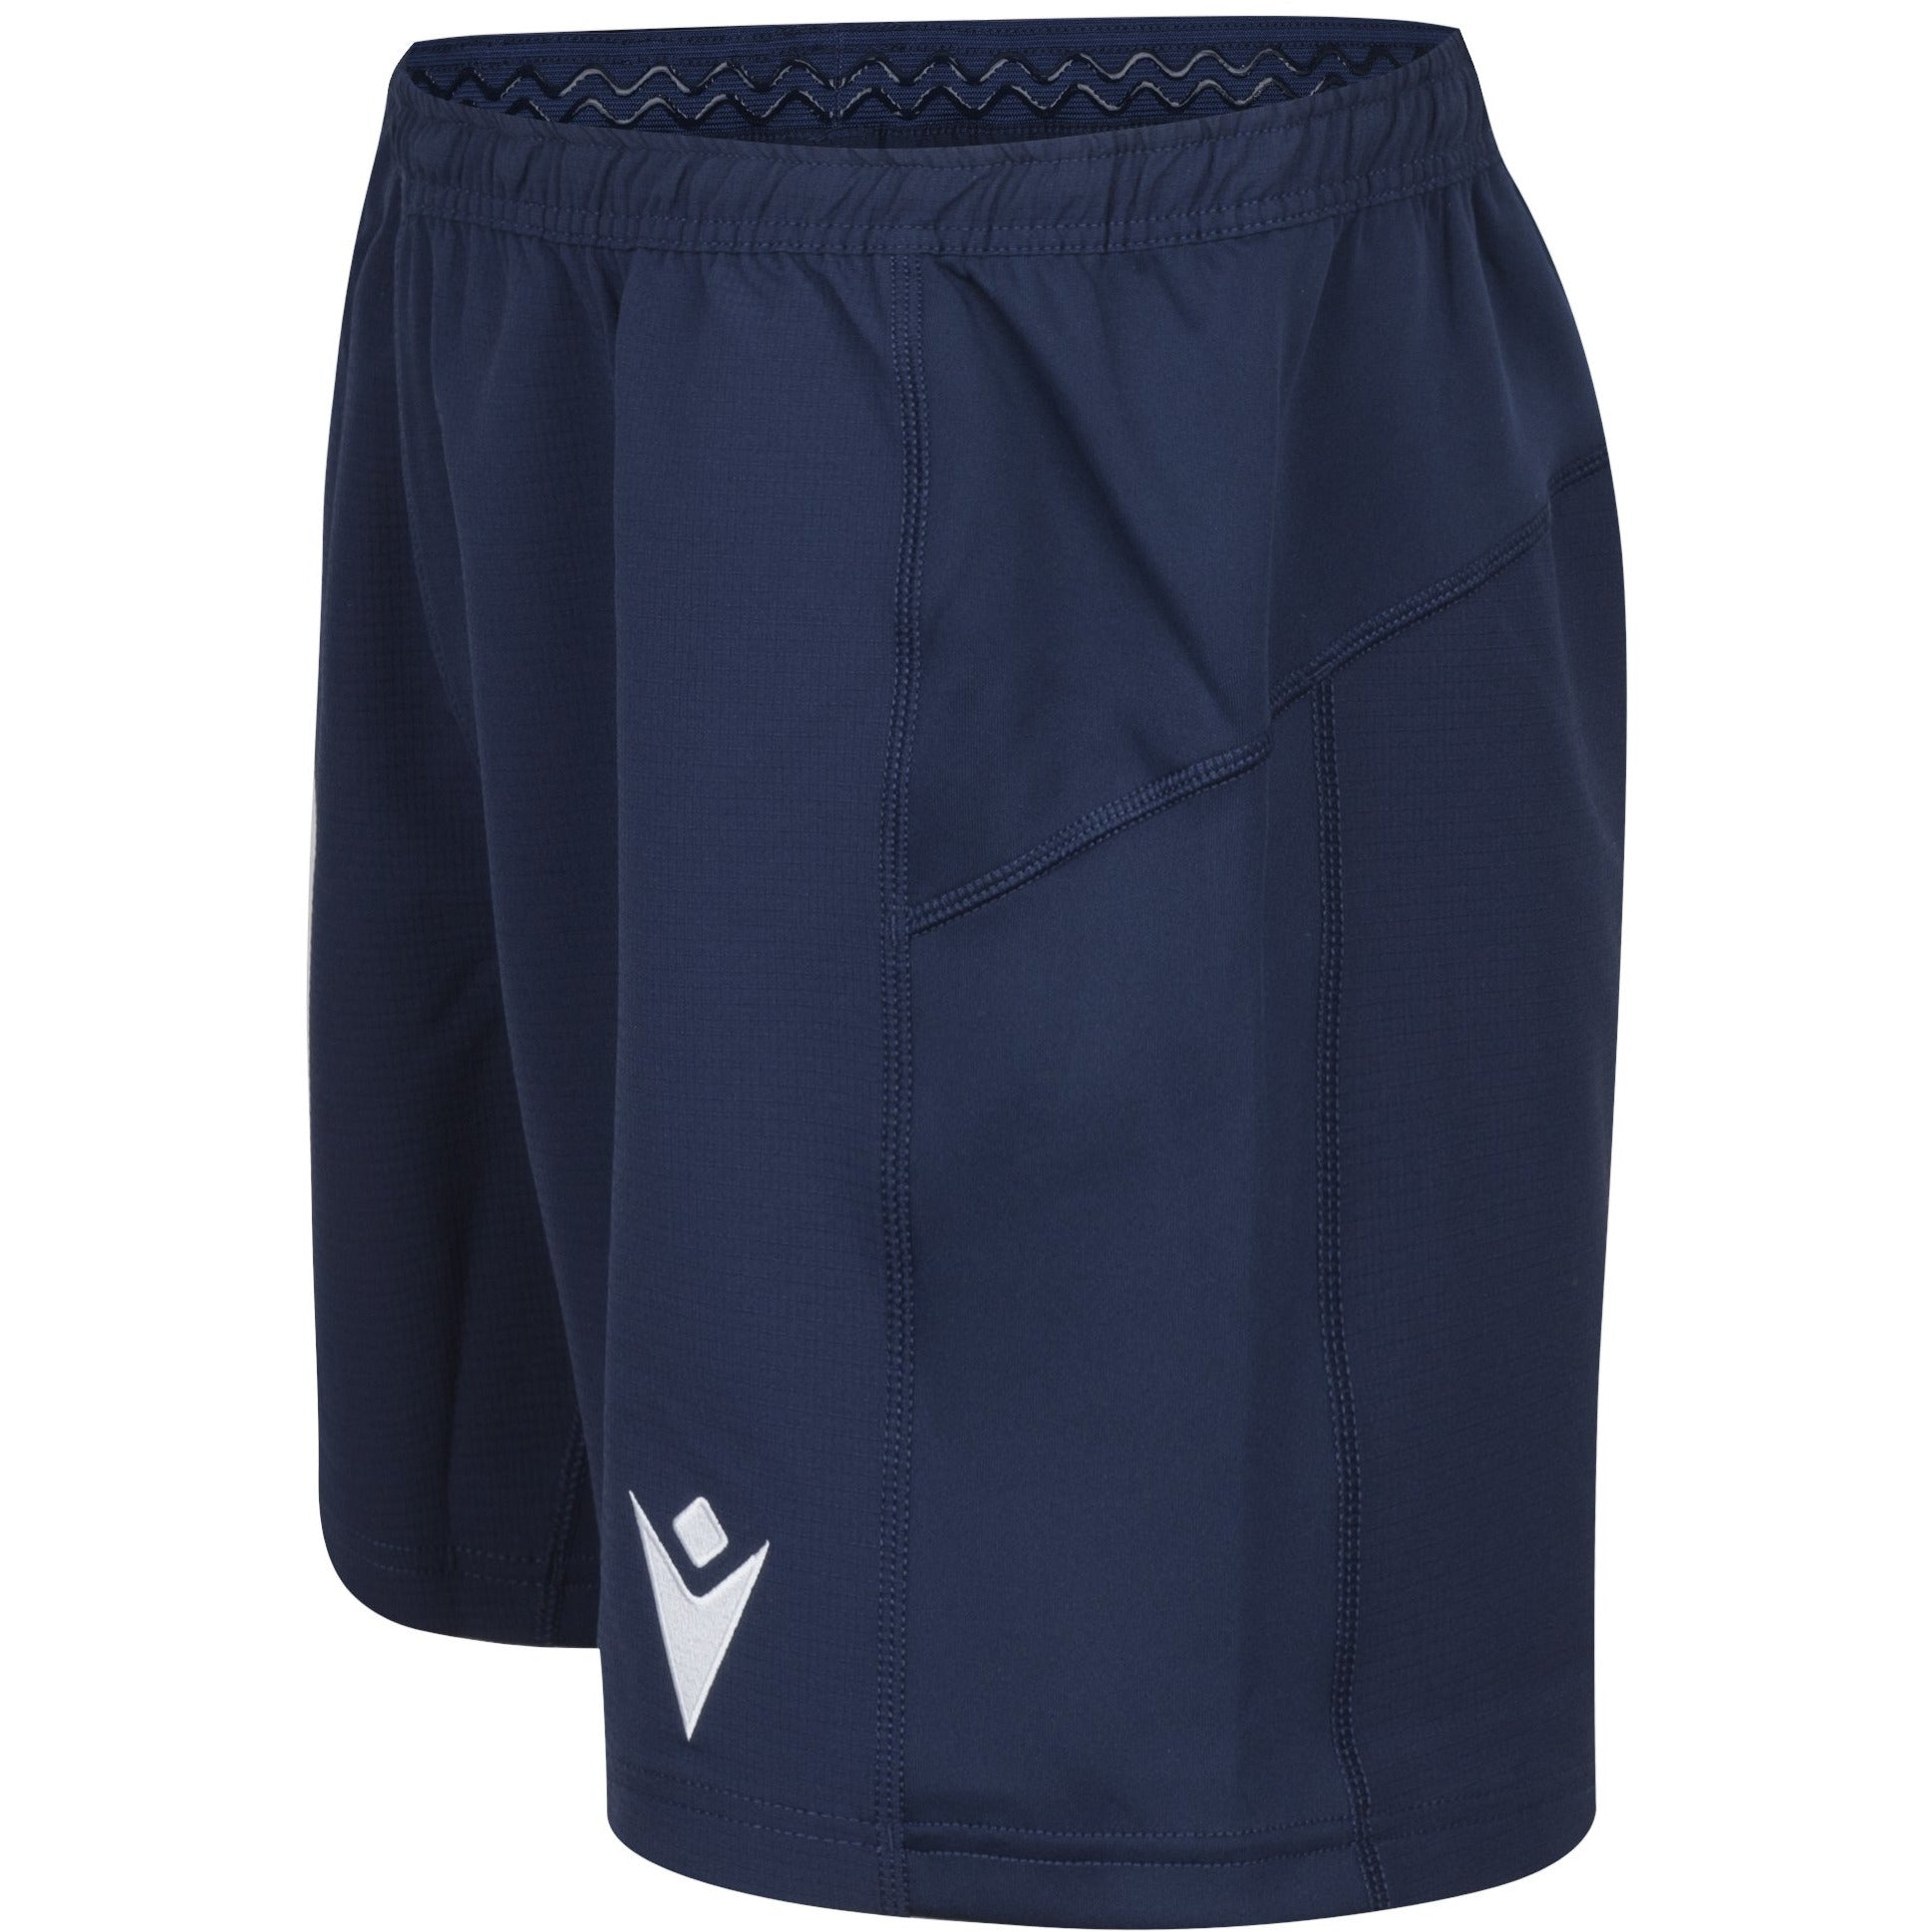 20/21 Training Rugby Shorts Adult